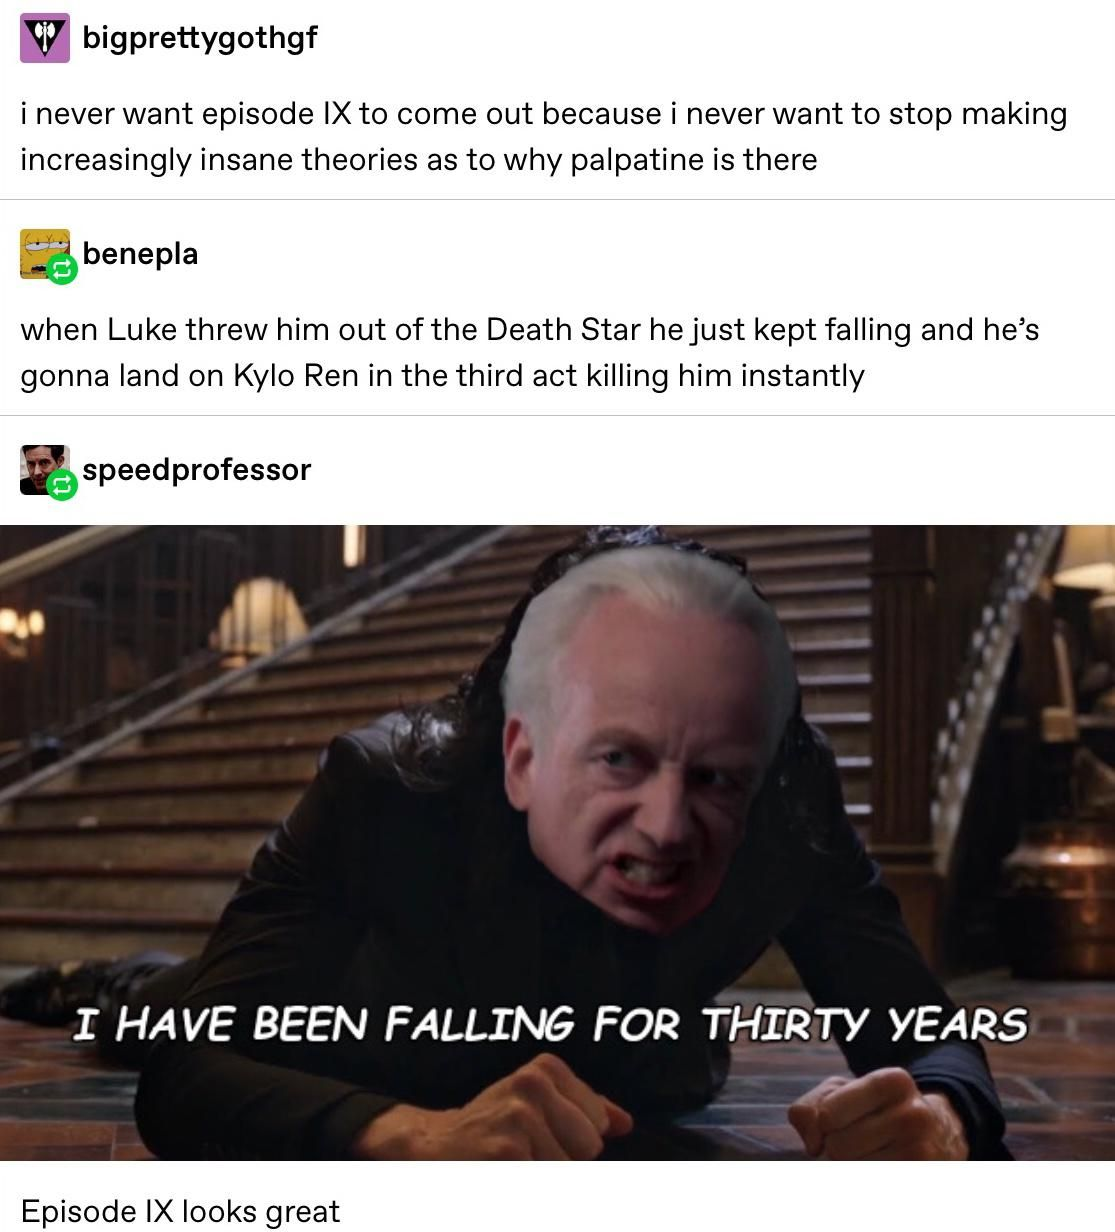 Palpatoads In Episode 9 Star Wars Quotes Star Wars Memes Star Wars Humor